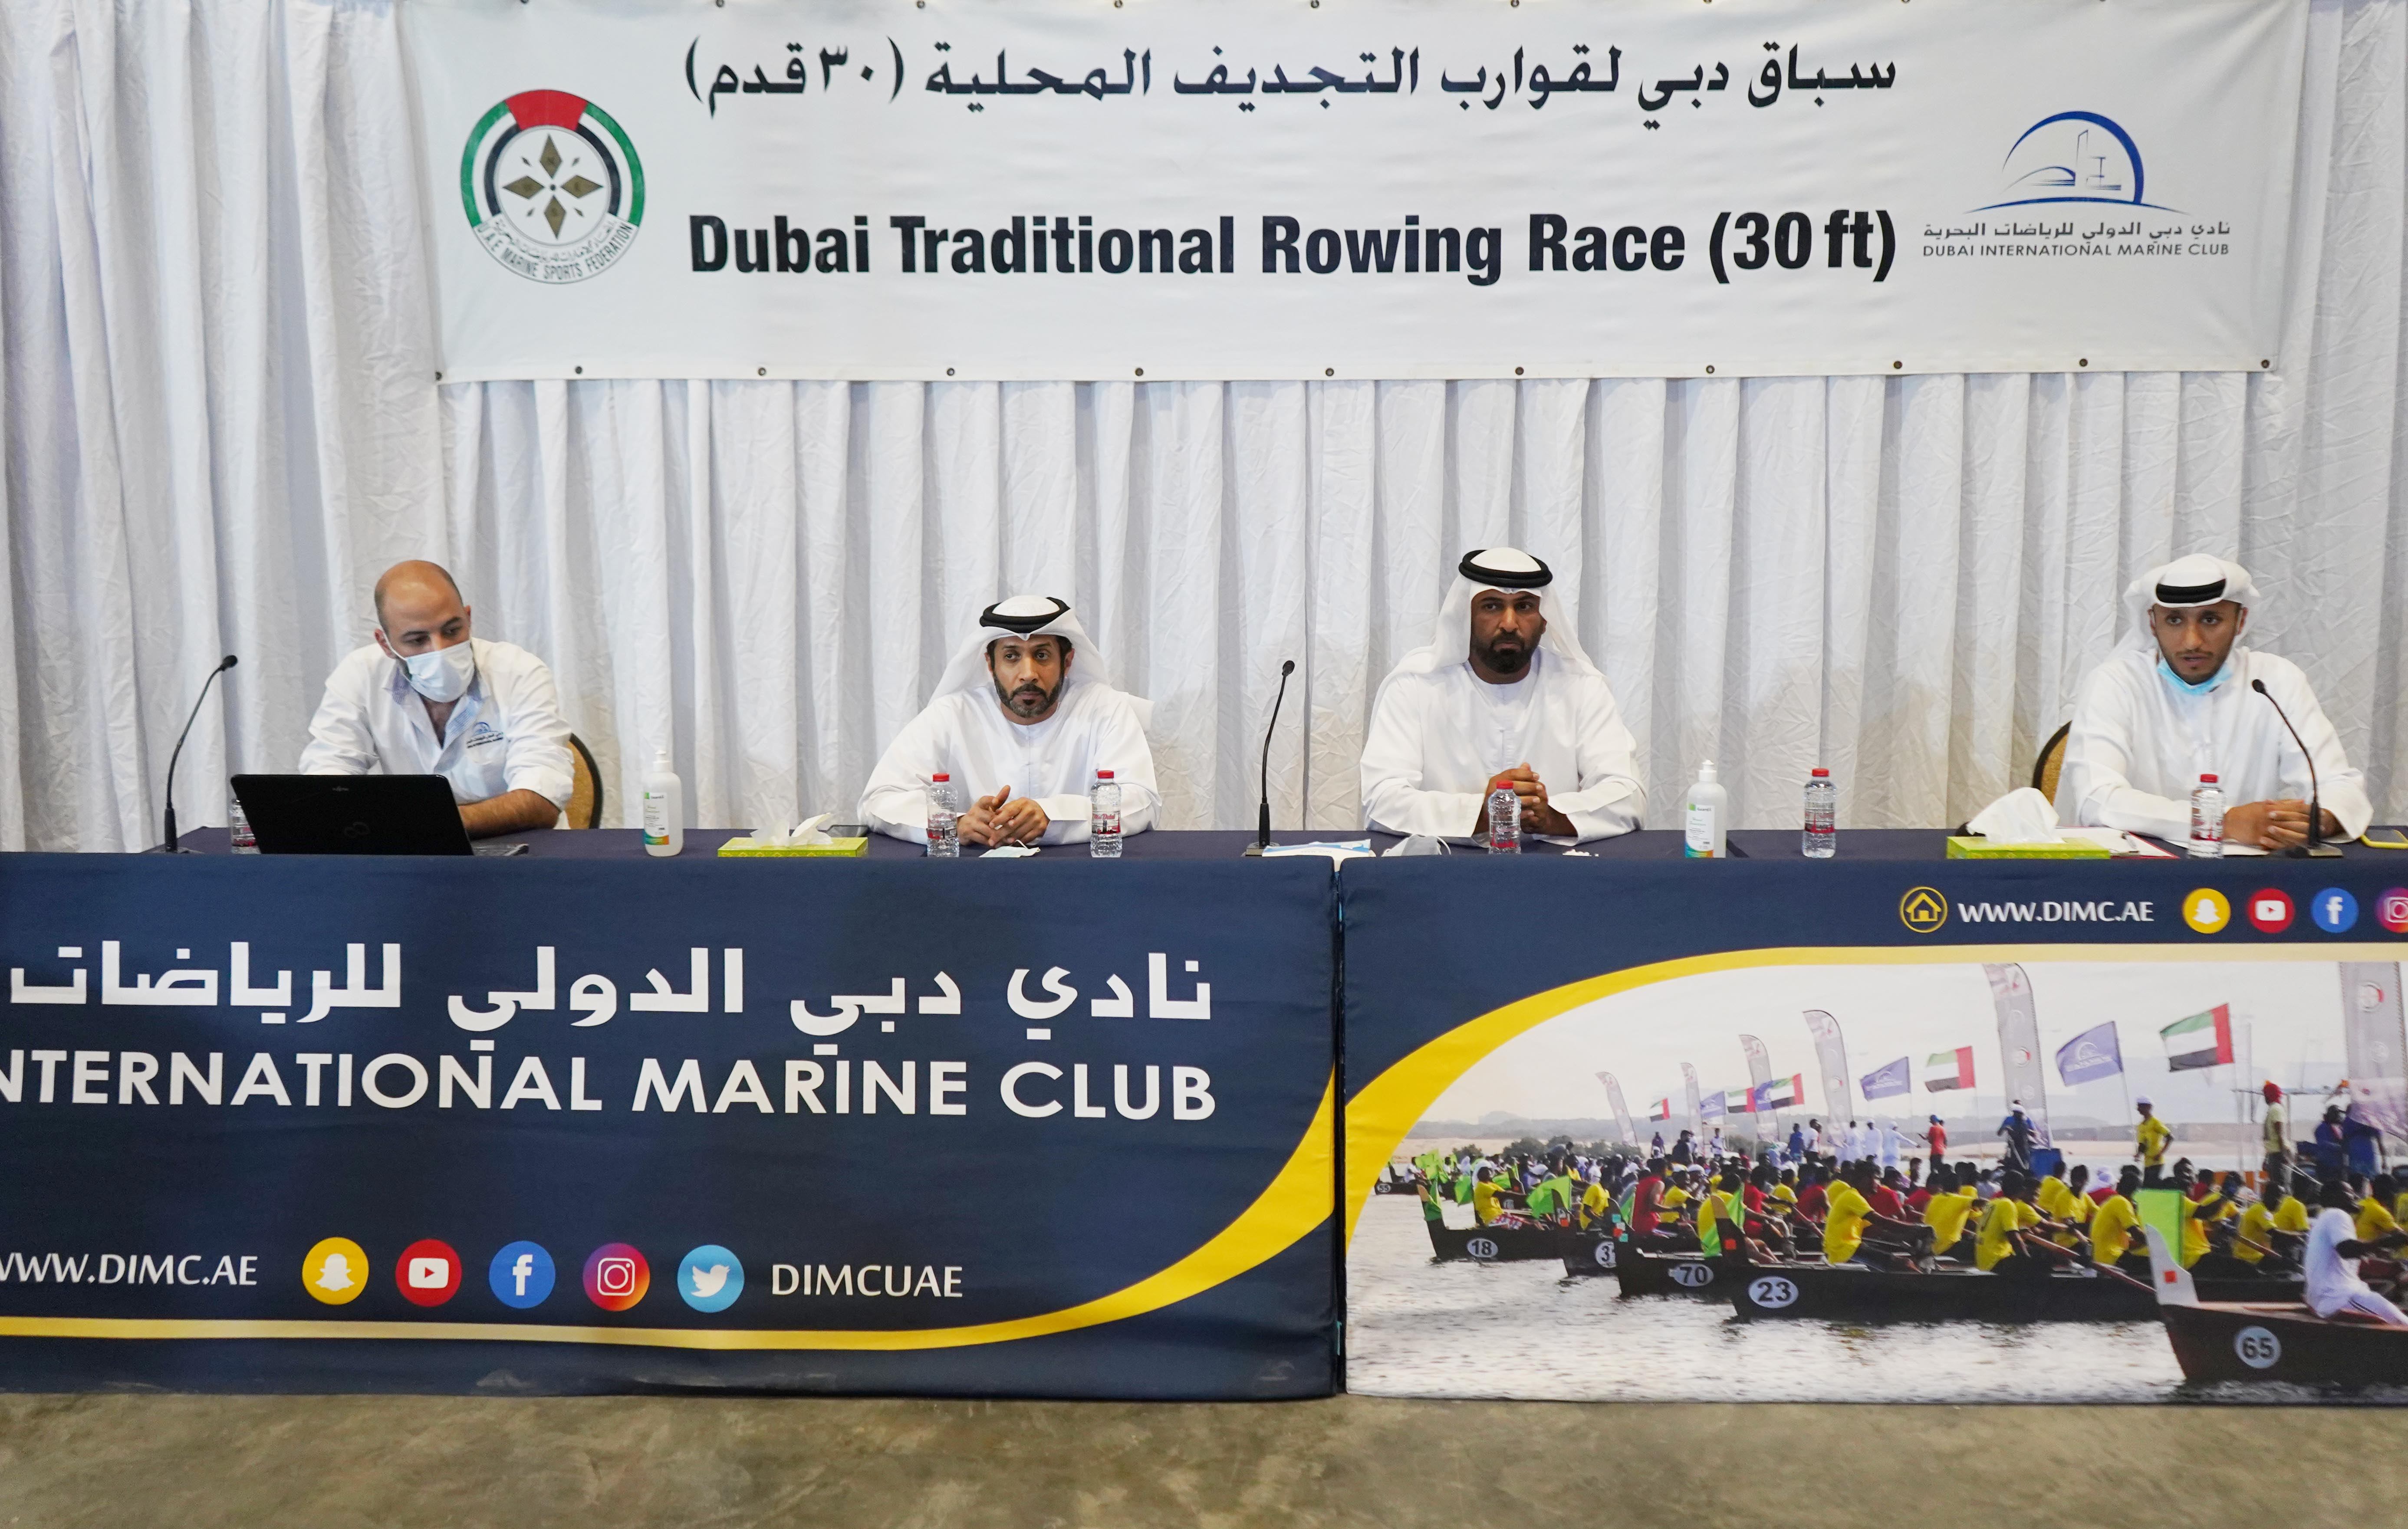 New Style for the Dubai Traditional Rowing (30ft)